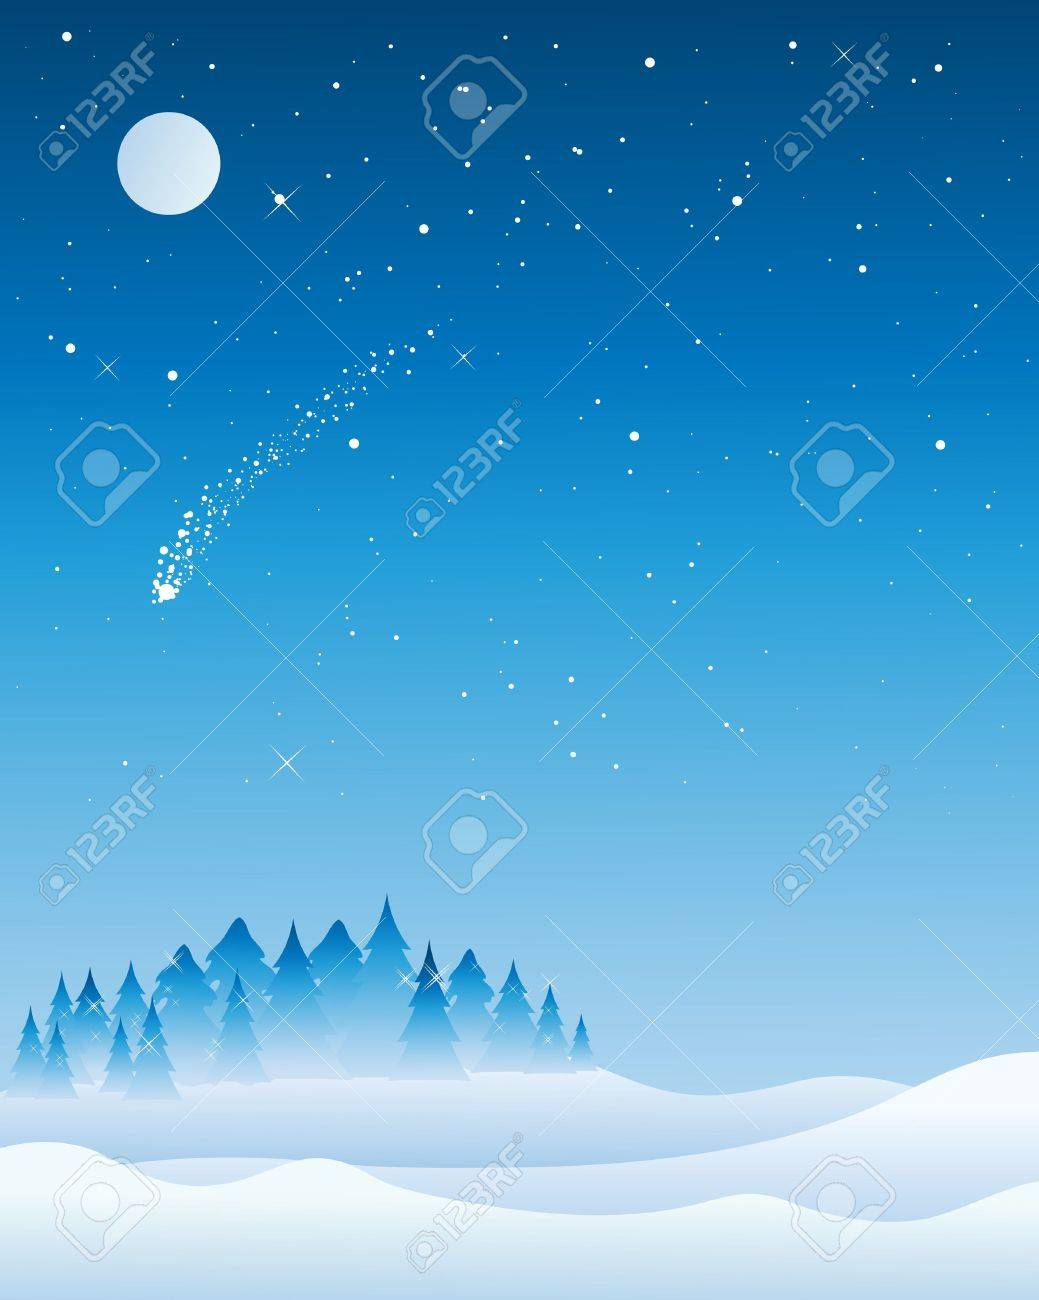 an illustration of a christmas tree syline on a cold snowy night with fir trees glistening under a full moon and a shooting star Stock Vector - 16517150